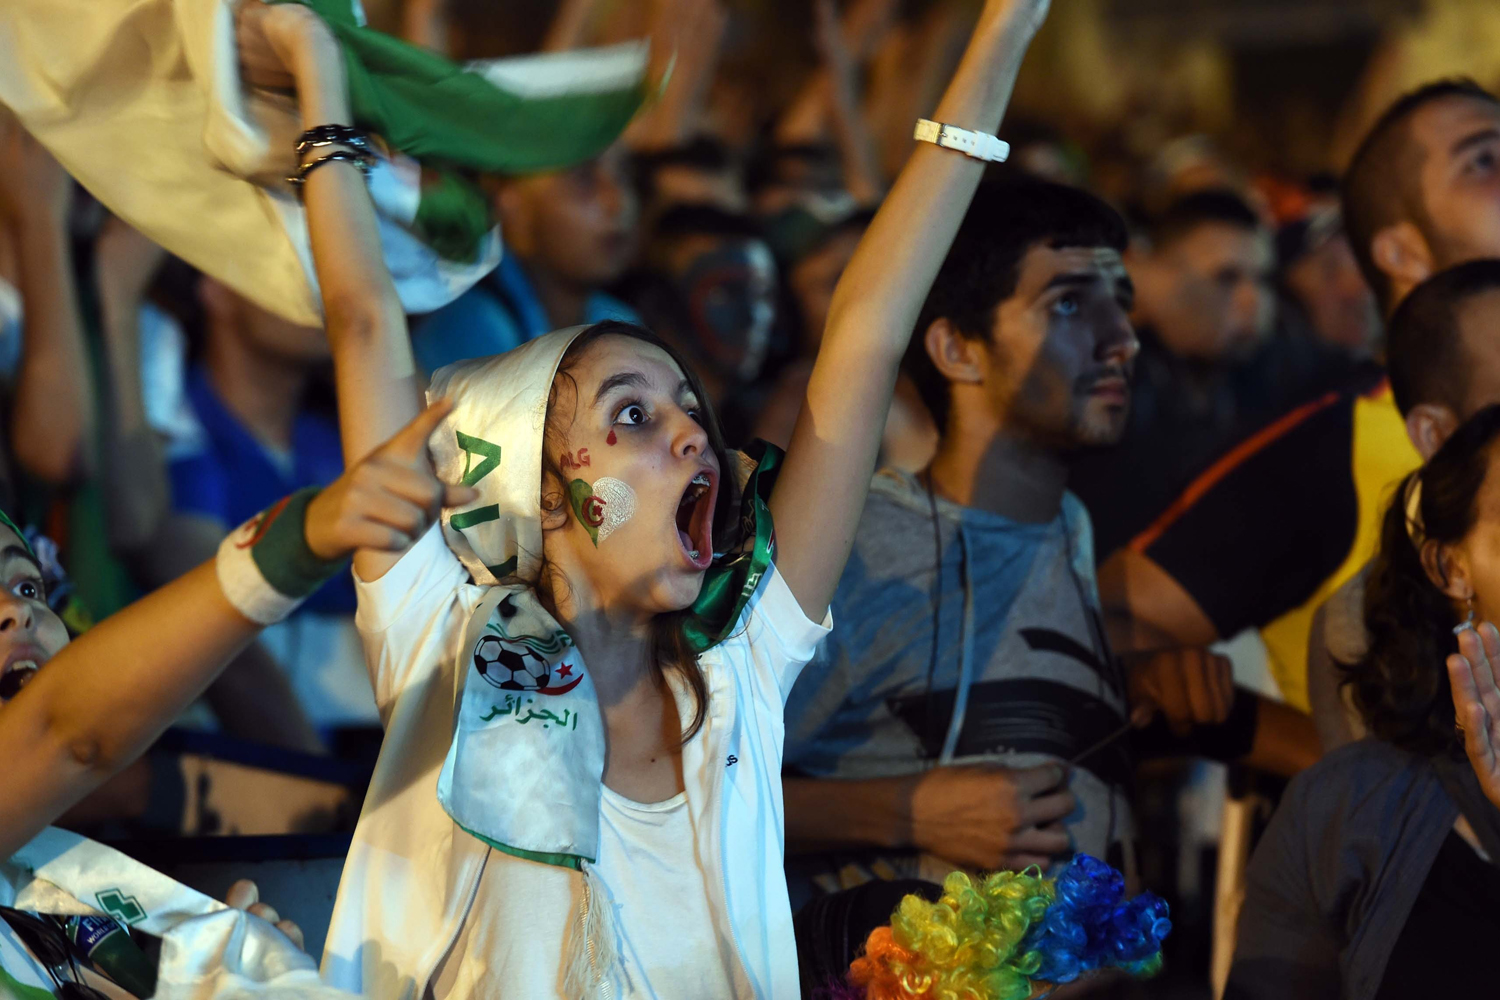 Jun. 26, 2014. Algerian fans celebrate in Algiers on after Algeria eliminated Russia with a 1-1 draw in a FIFA 2014 World Cup Group H match.